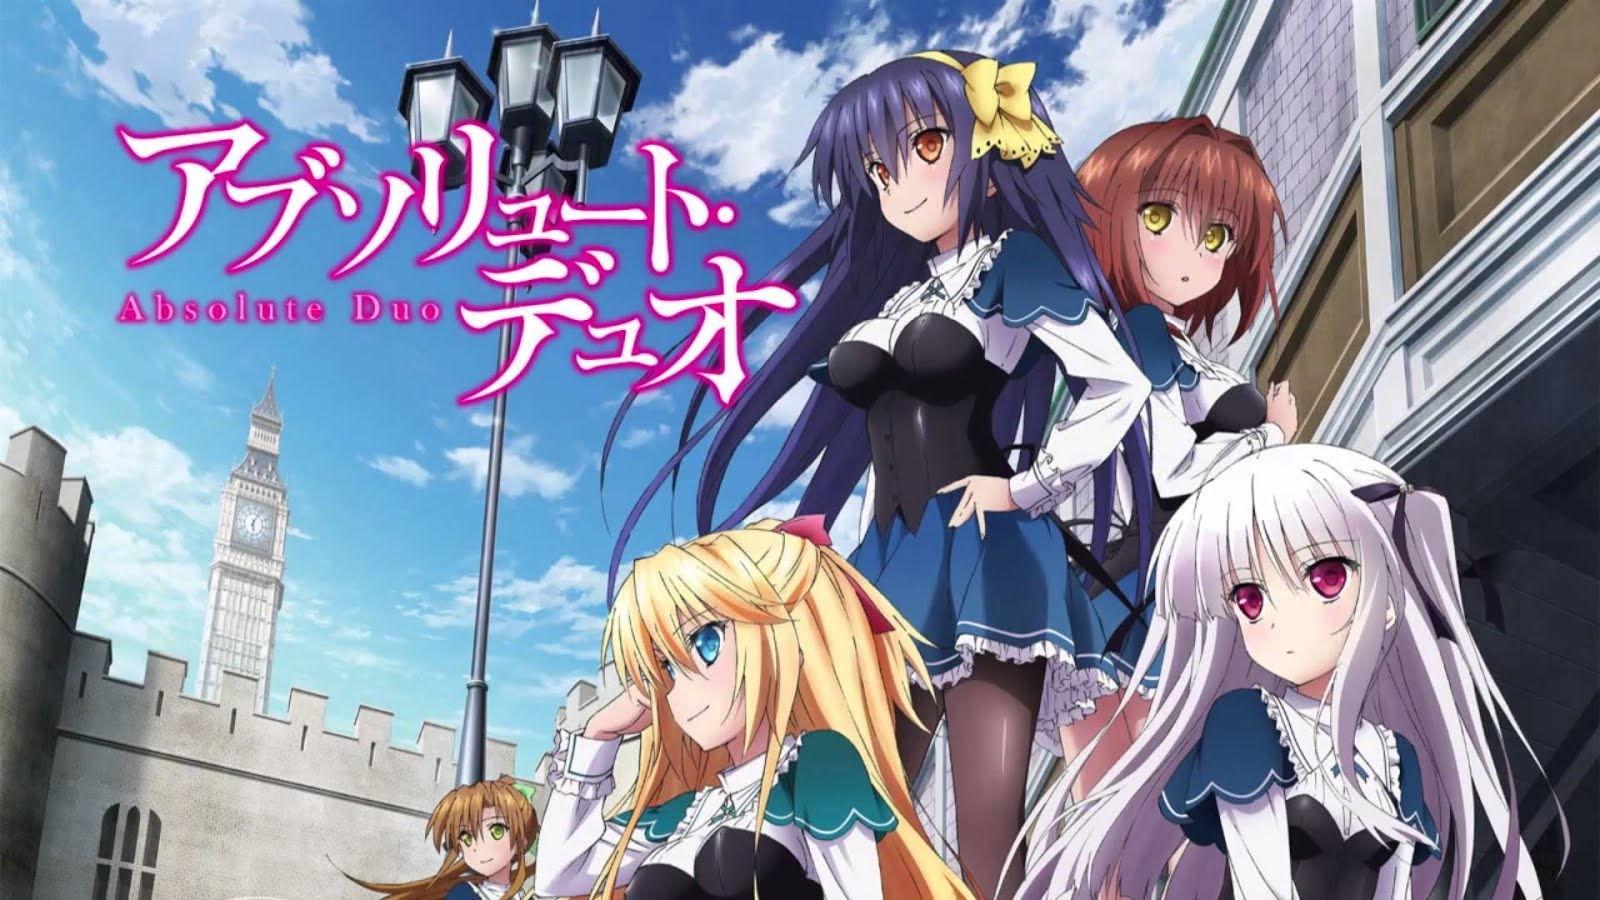 絶対デュオ Zettai de~yuo (Absolute Duo)